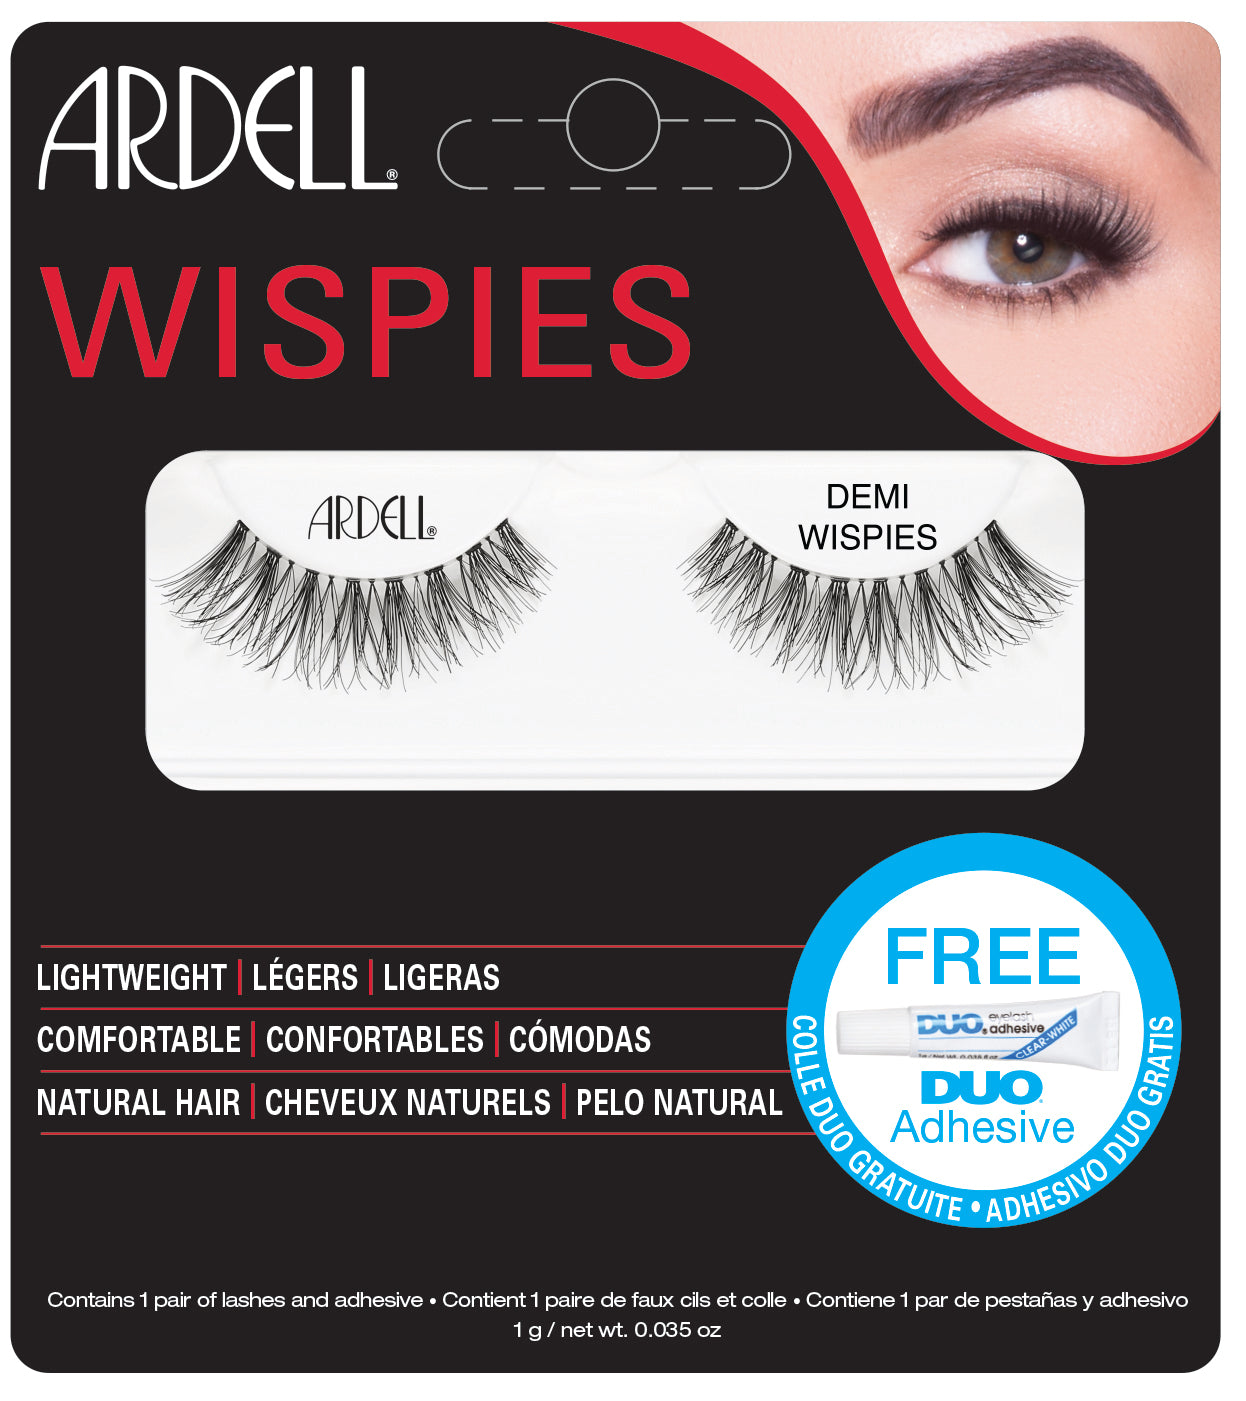 3838ac983e8 Ardell Wispies Demi Lashes Black with Free DUO Lash Adhesive (Clear) 1g